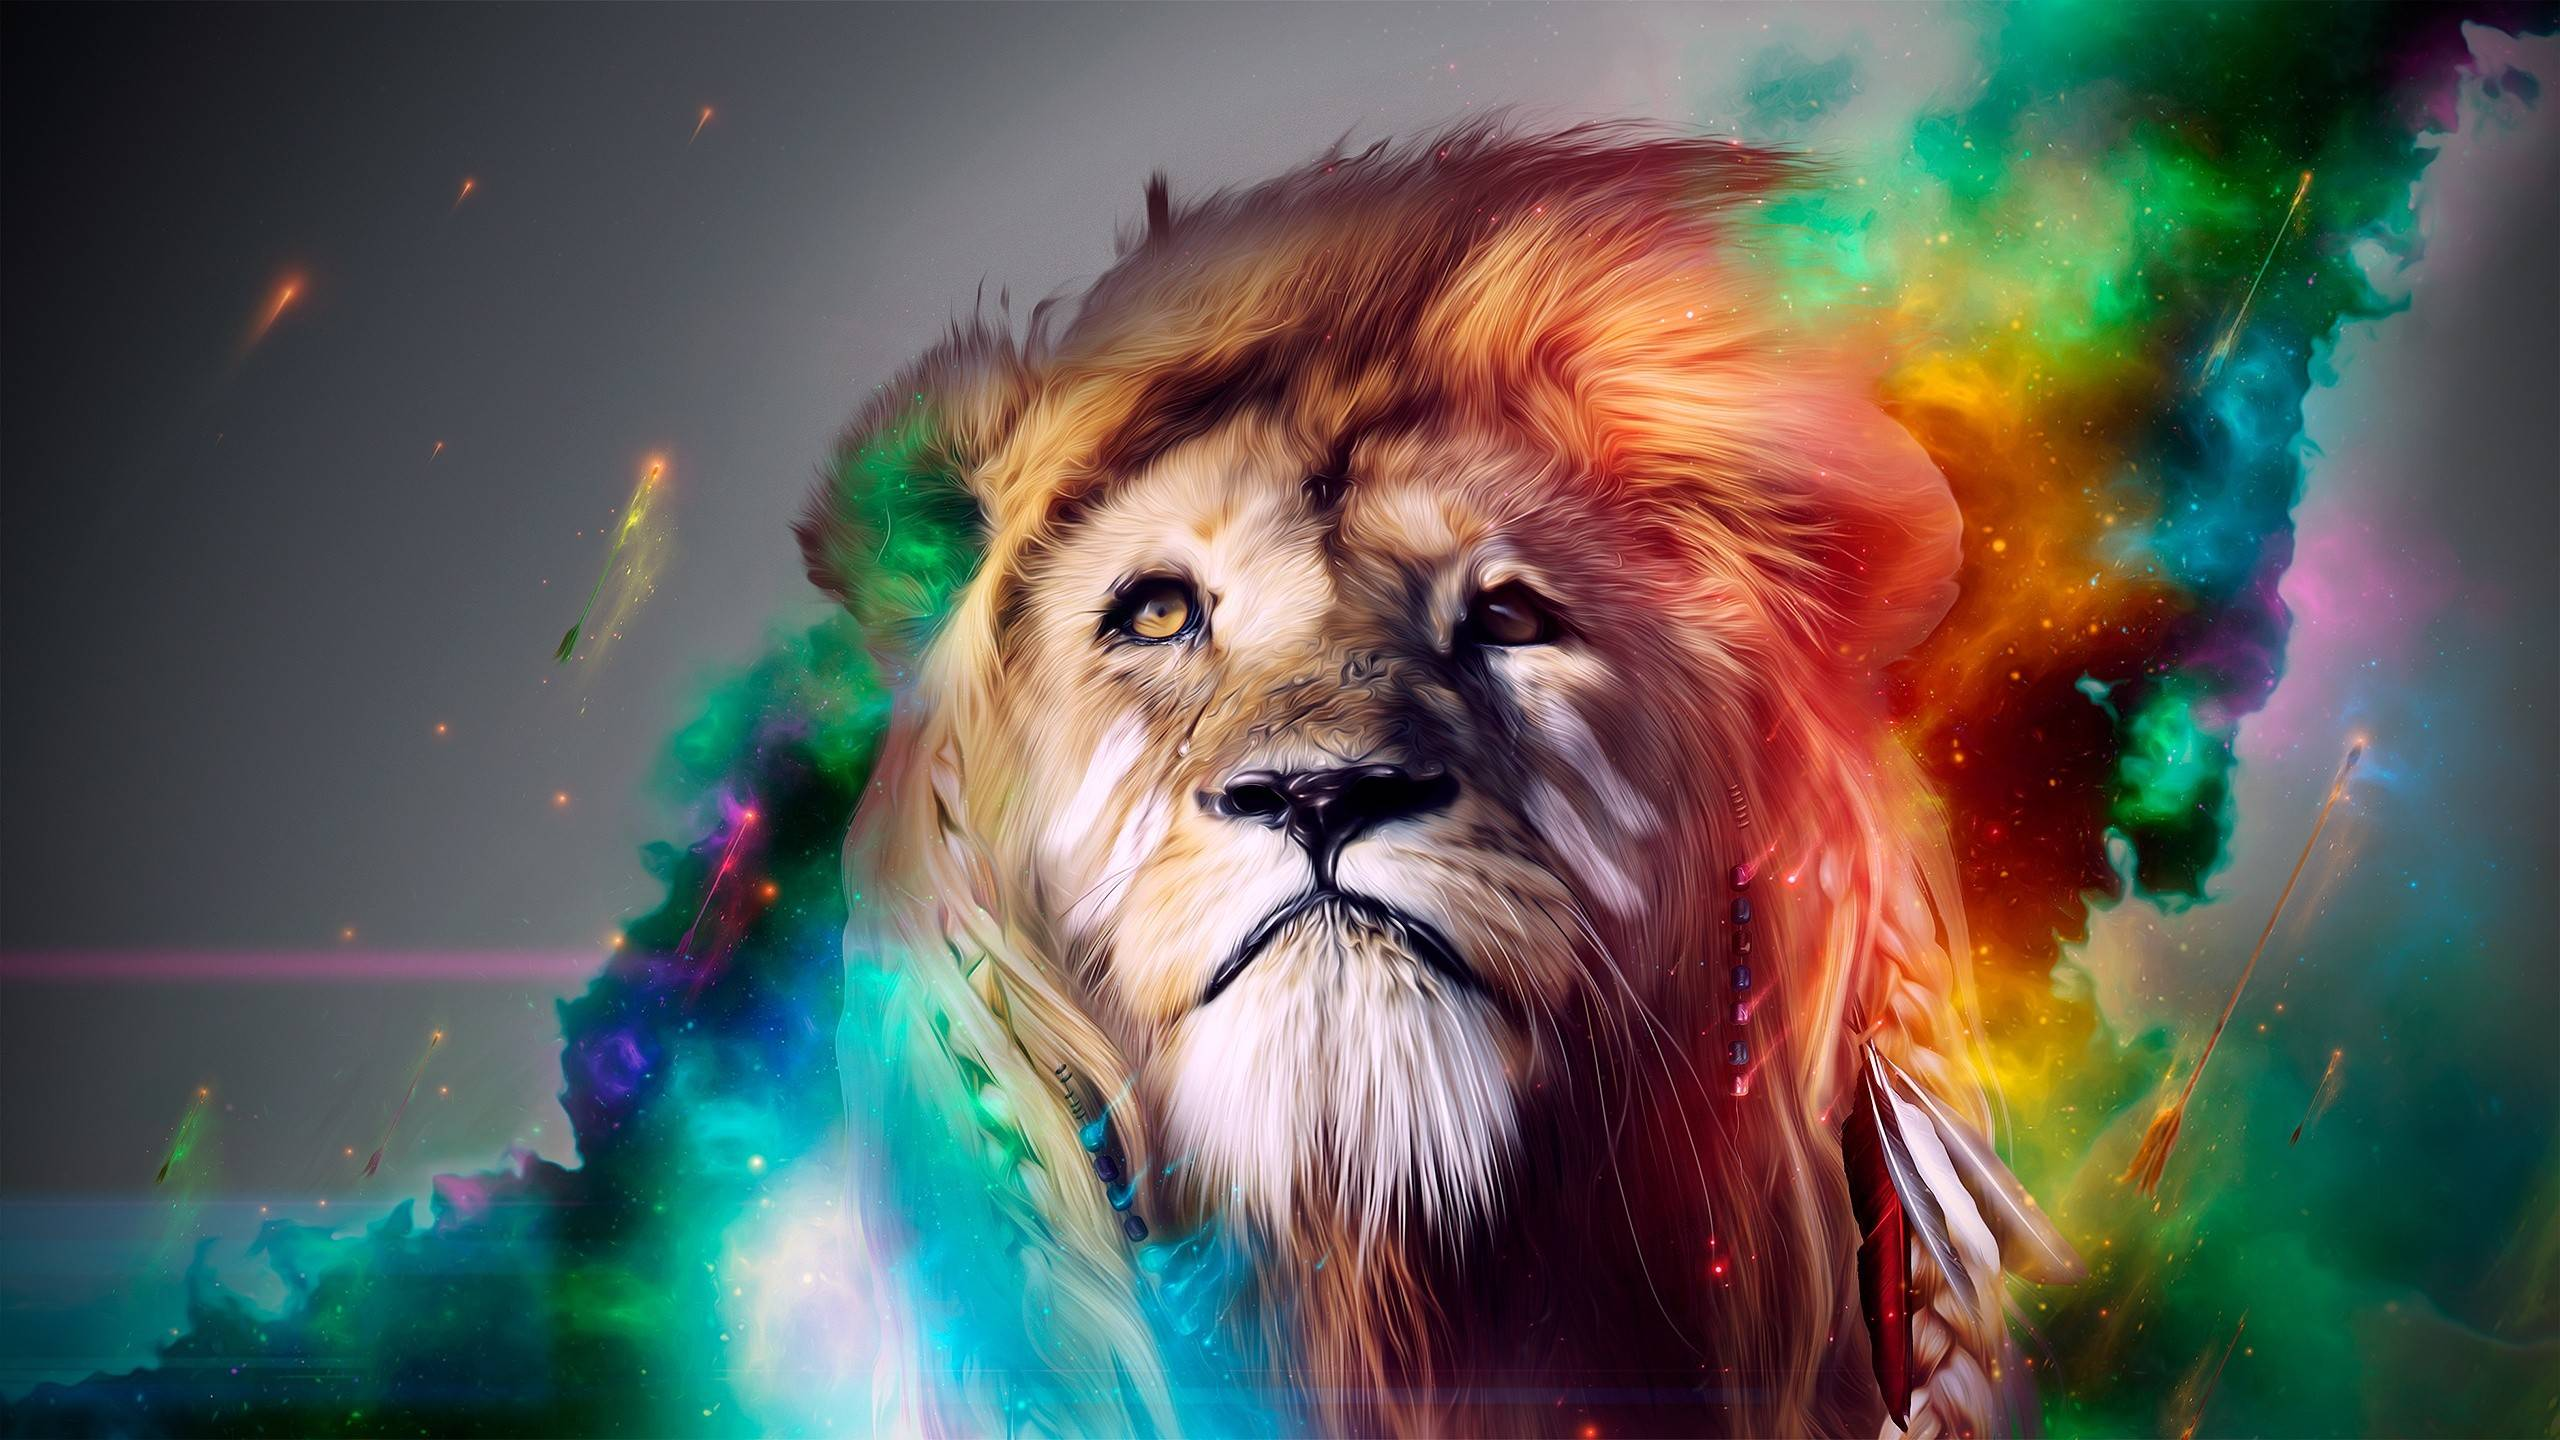 133332d1363856957 lion wallpapers lion photo 2560 x 1440jpg 2560x1440